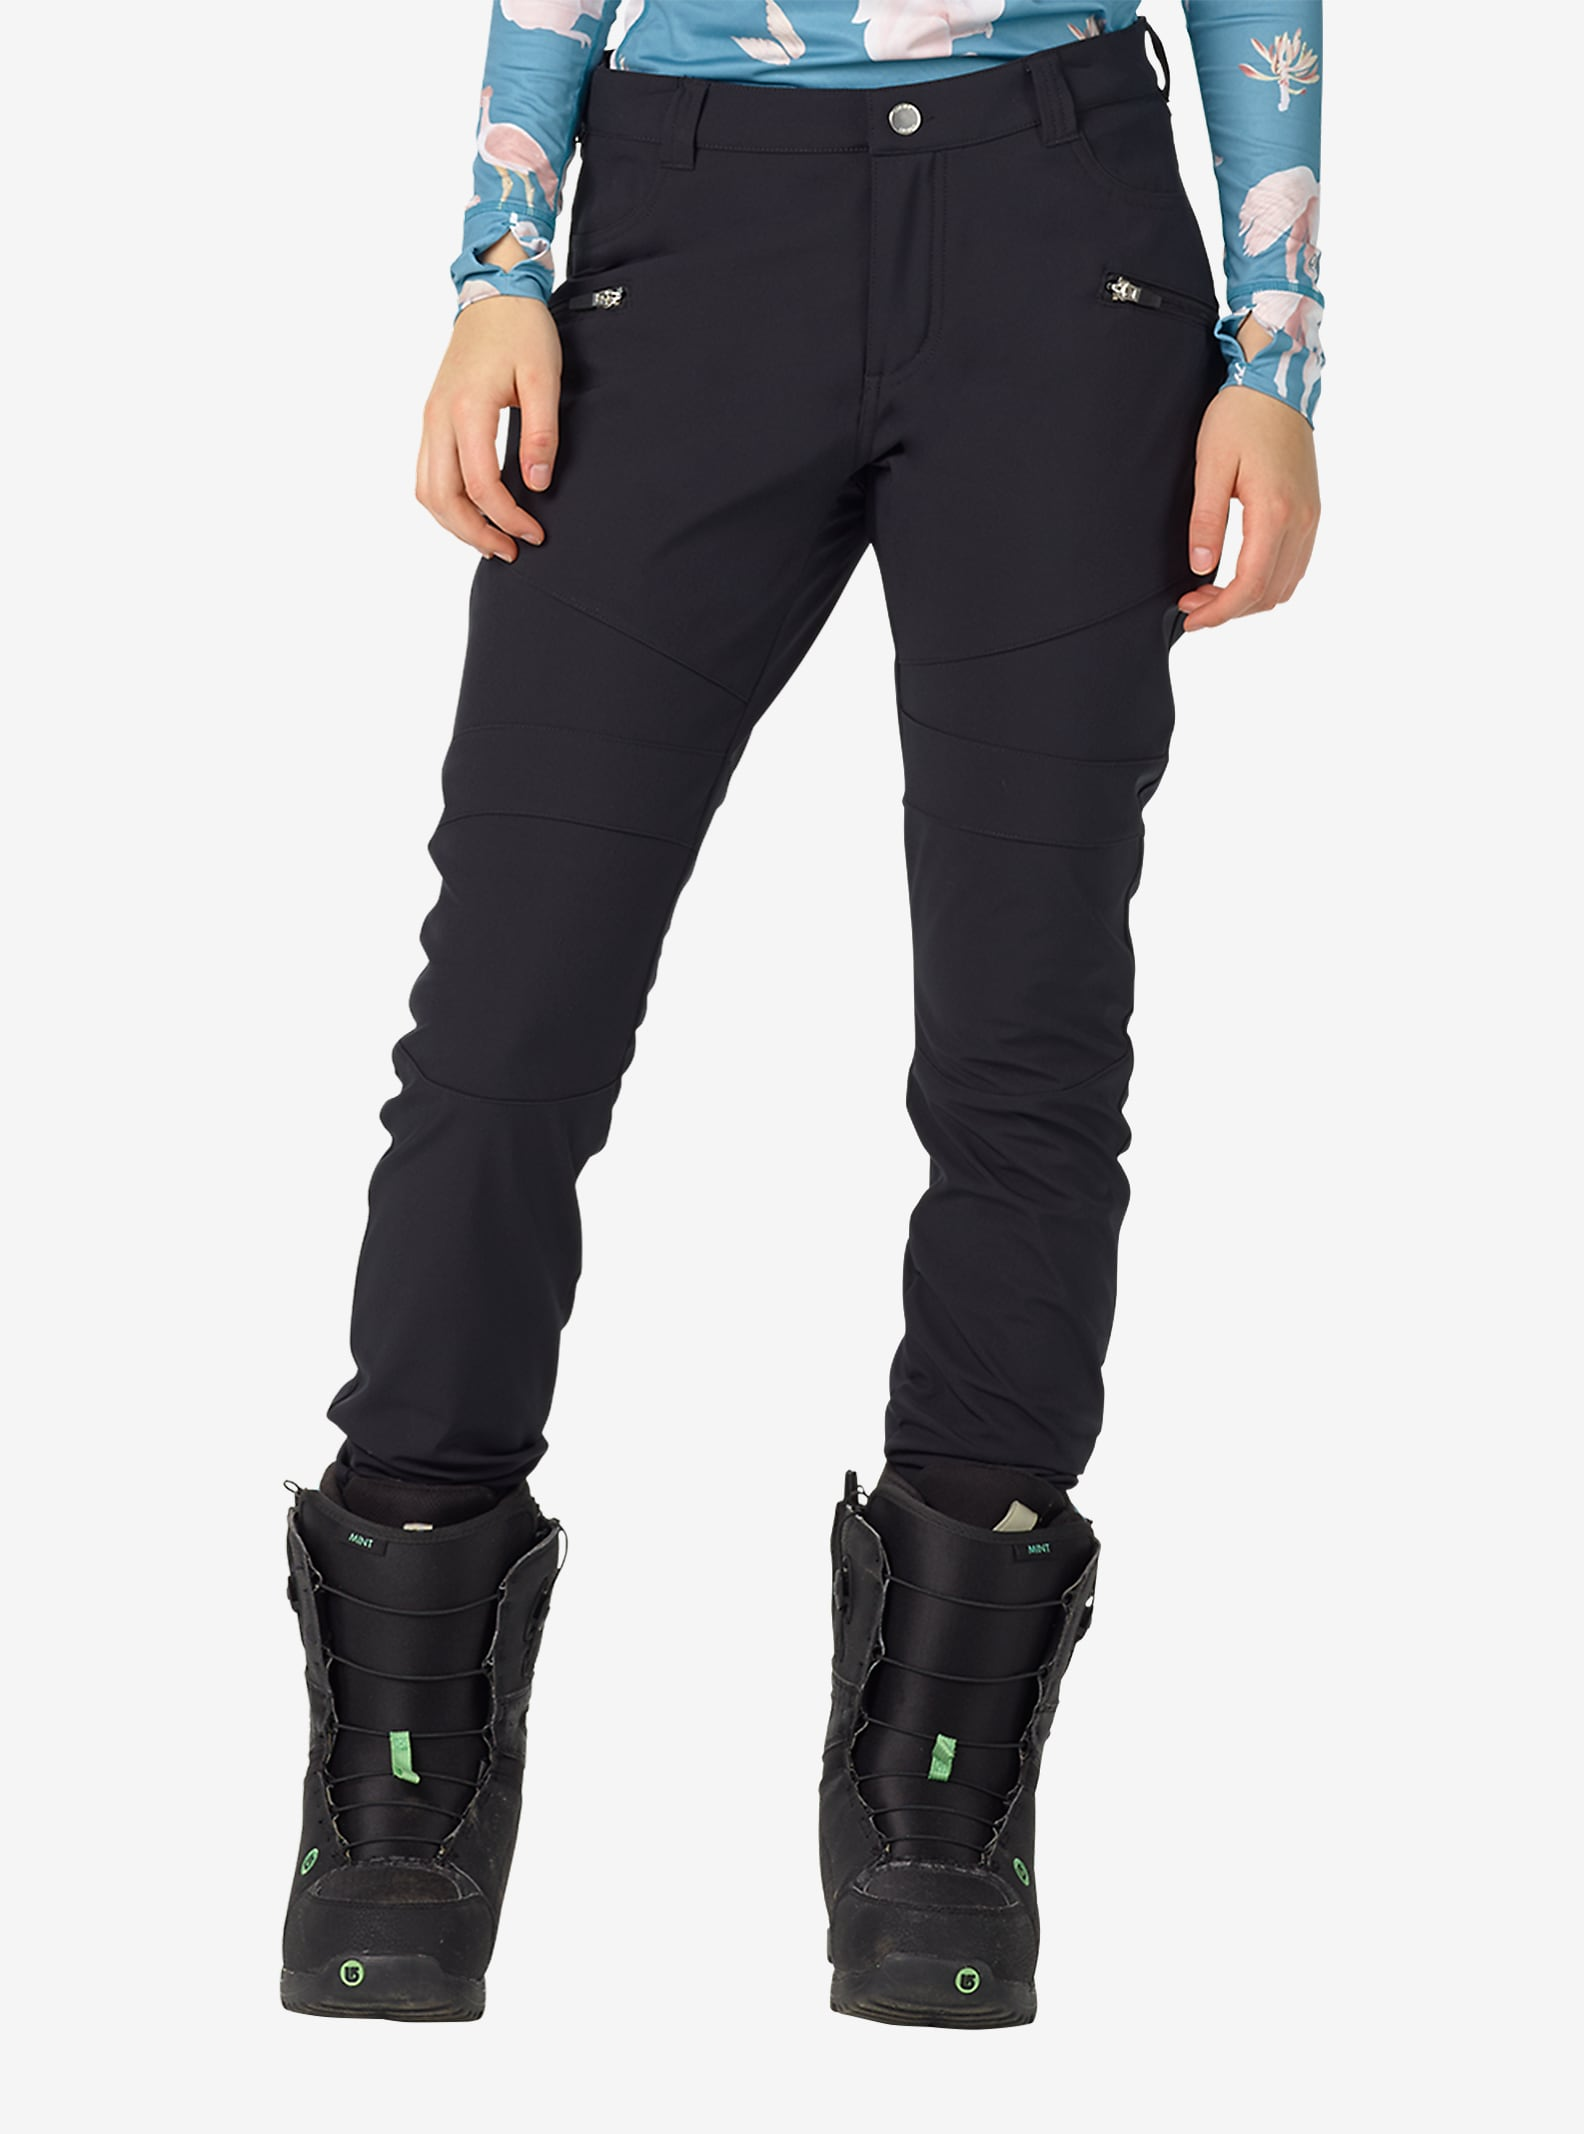 Burton Ivy Pant shown in True Black